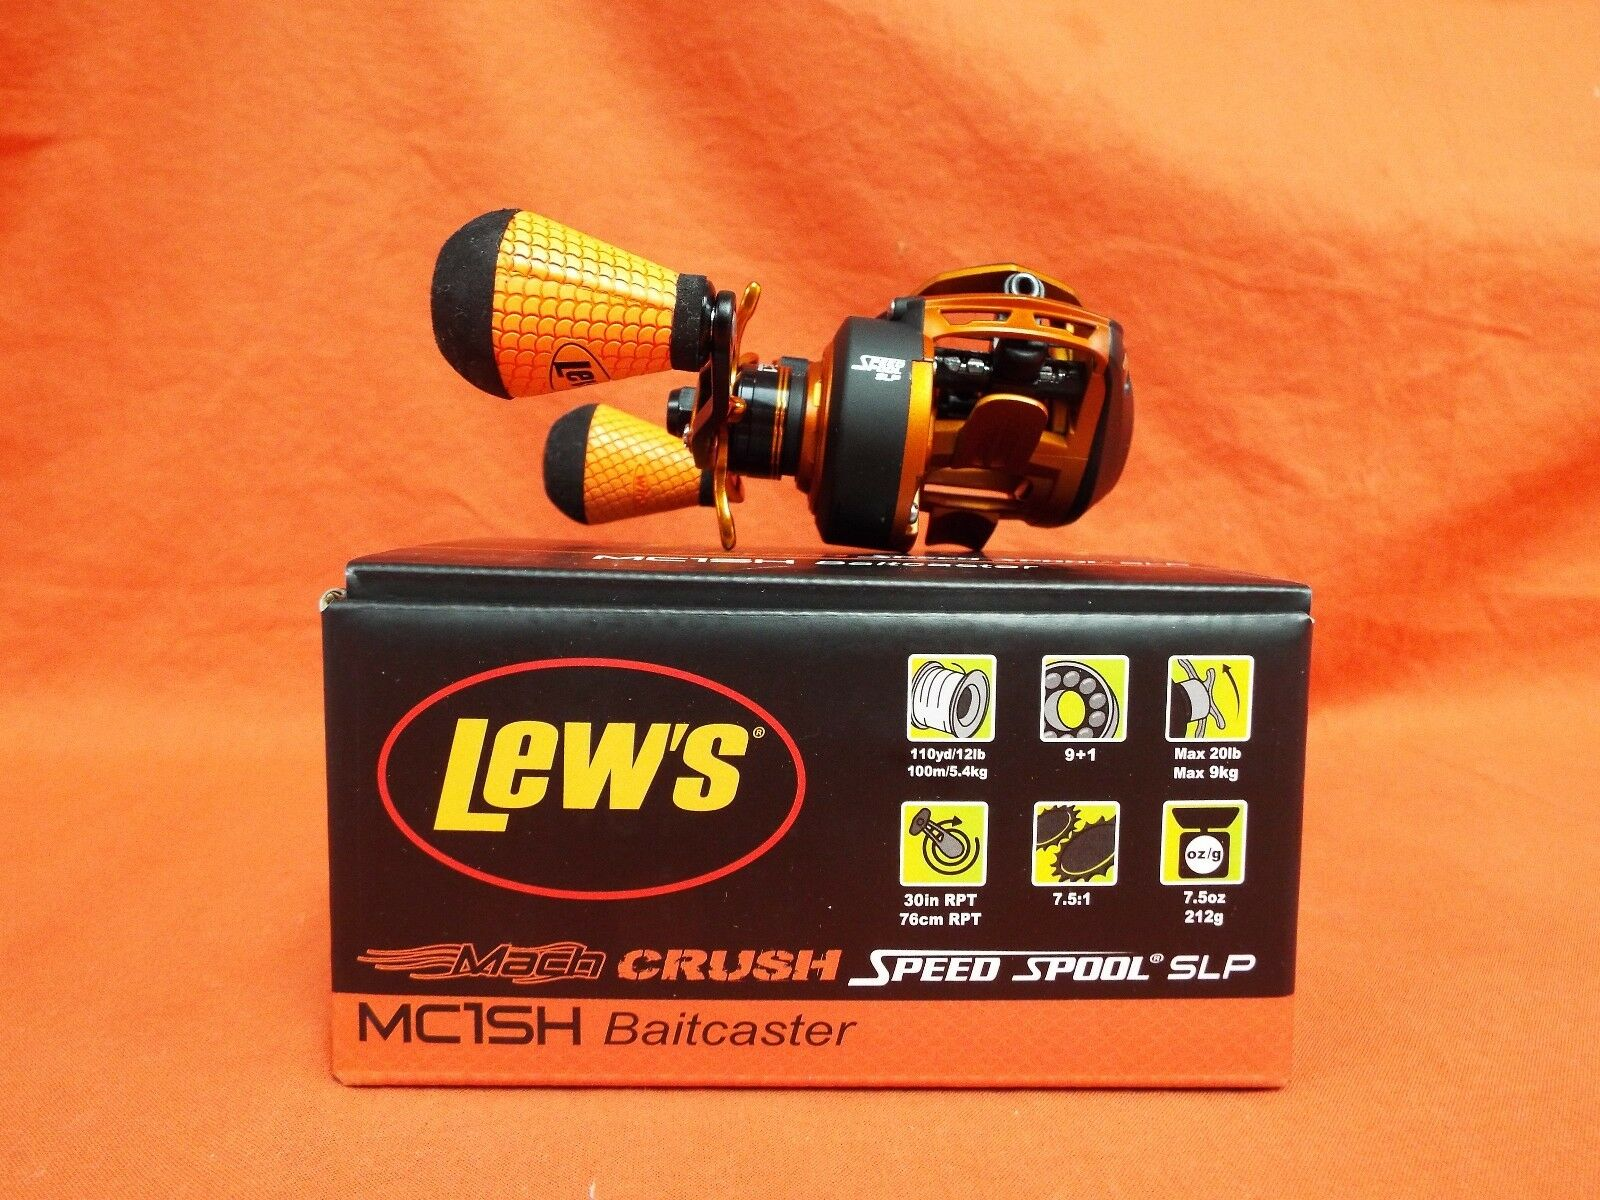 LEW'S Mach Crush Speed Spool SPL Series Baitcast Reel Gear Ratio 7.5 1  MC1SH